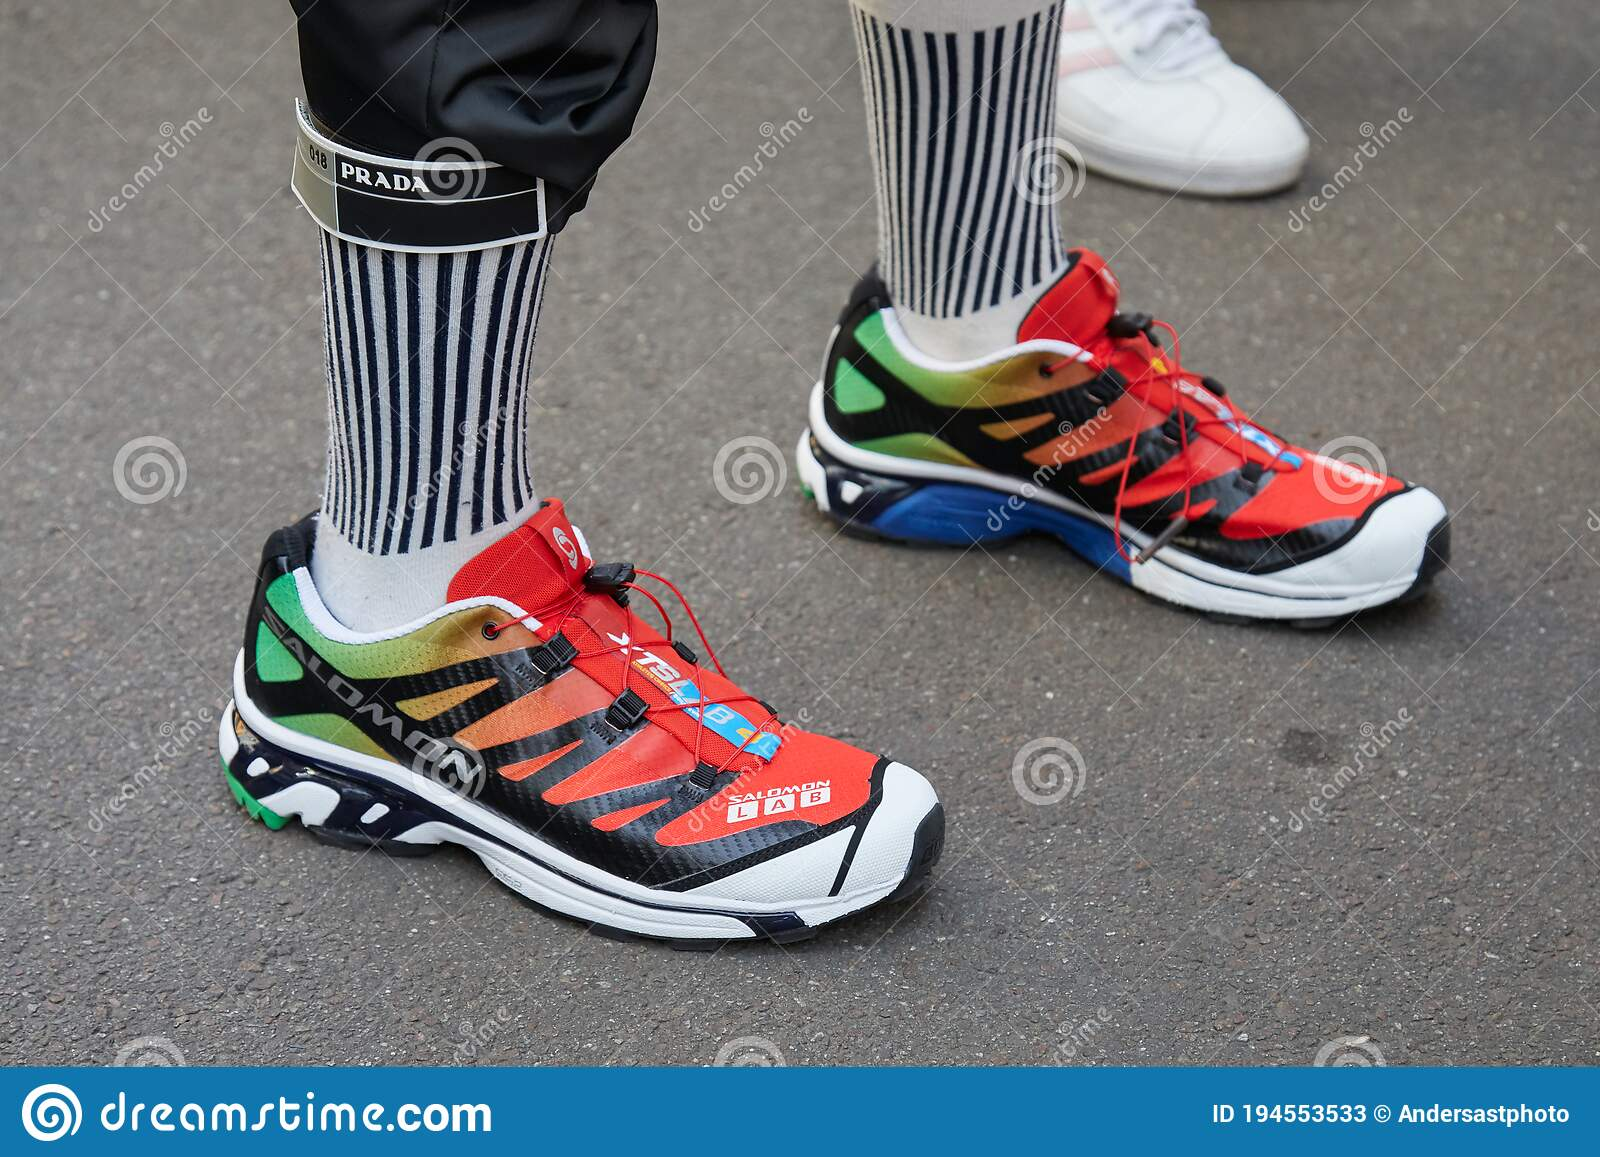 Salomon Lab Red, Green And White Shoes